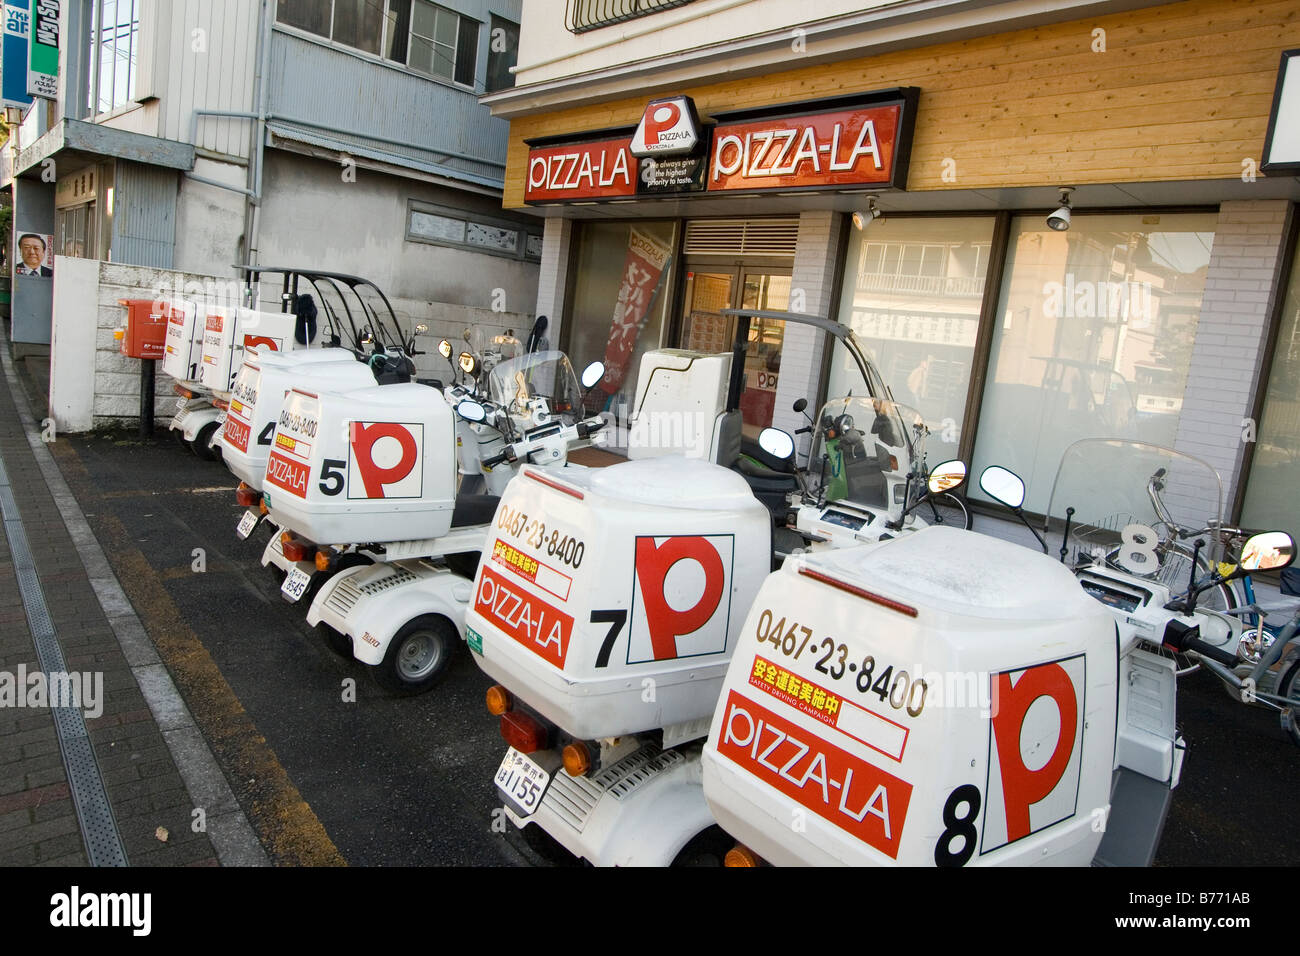 pizza delivery motorcycles parked near pizzeria,Japan - Stock Image